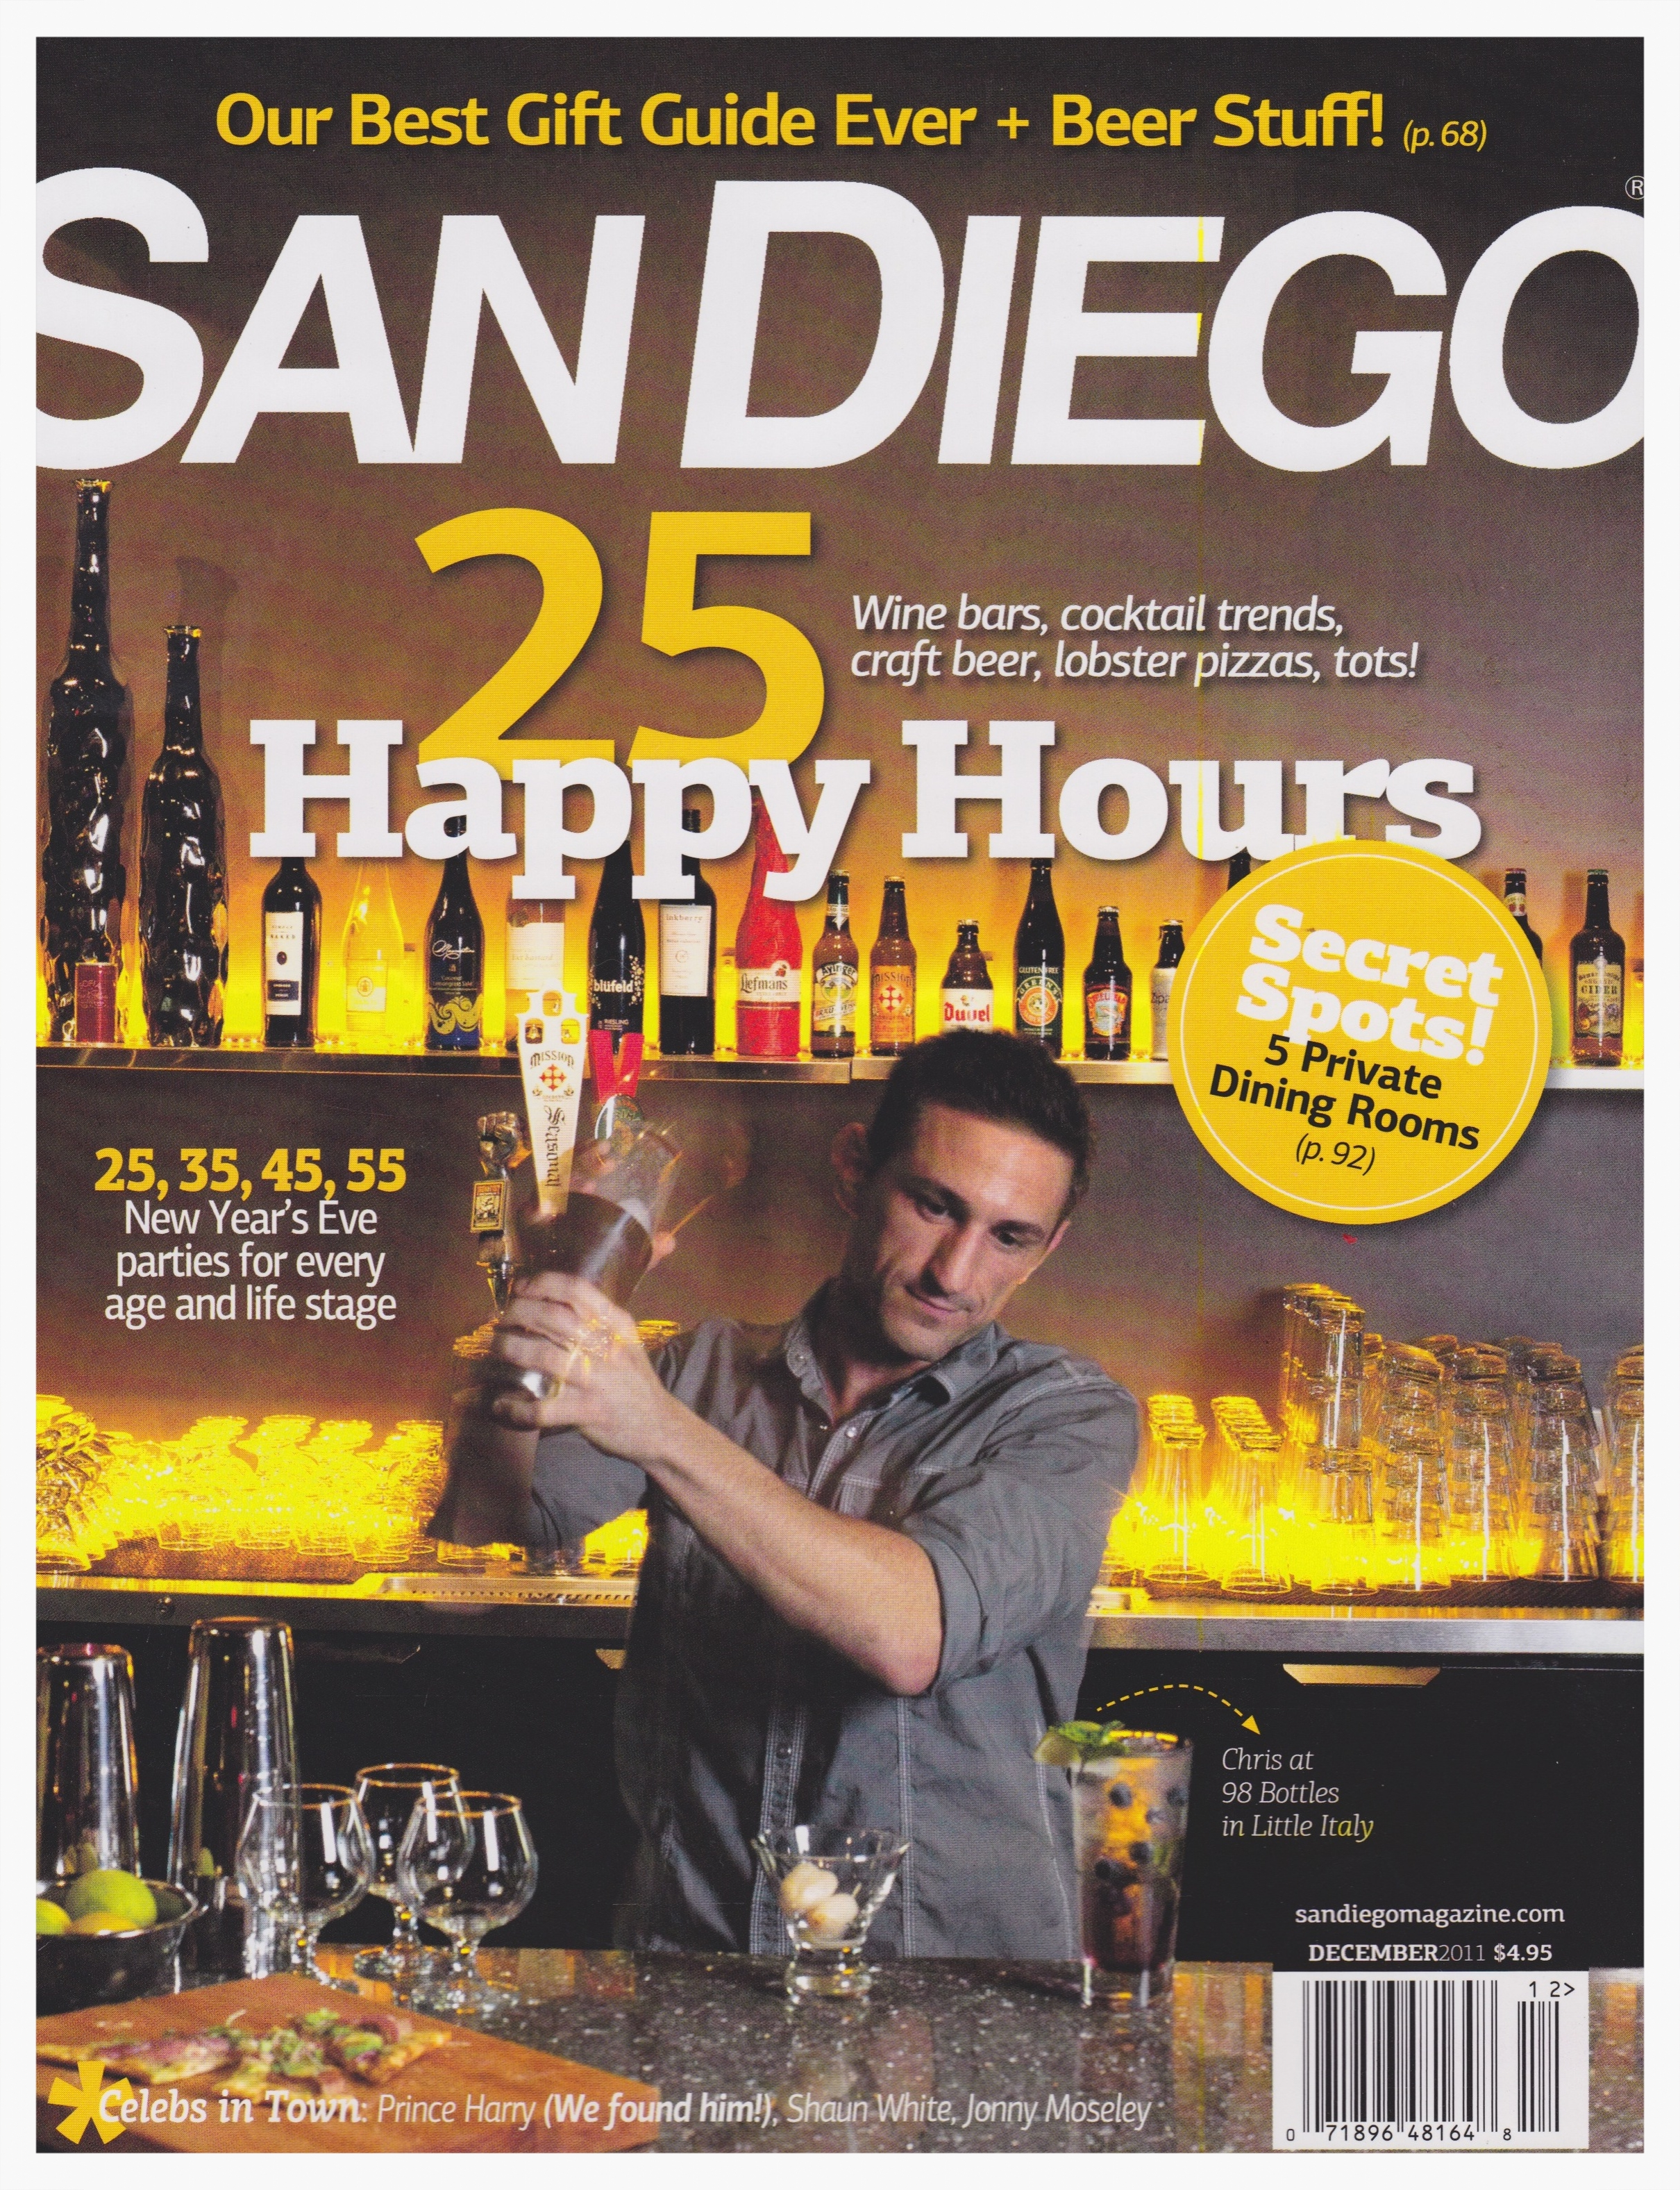 SD MAg_Dec 11 Cover.jpeg